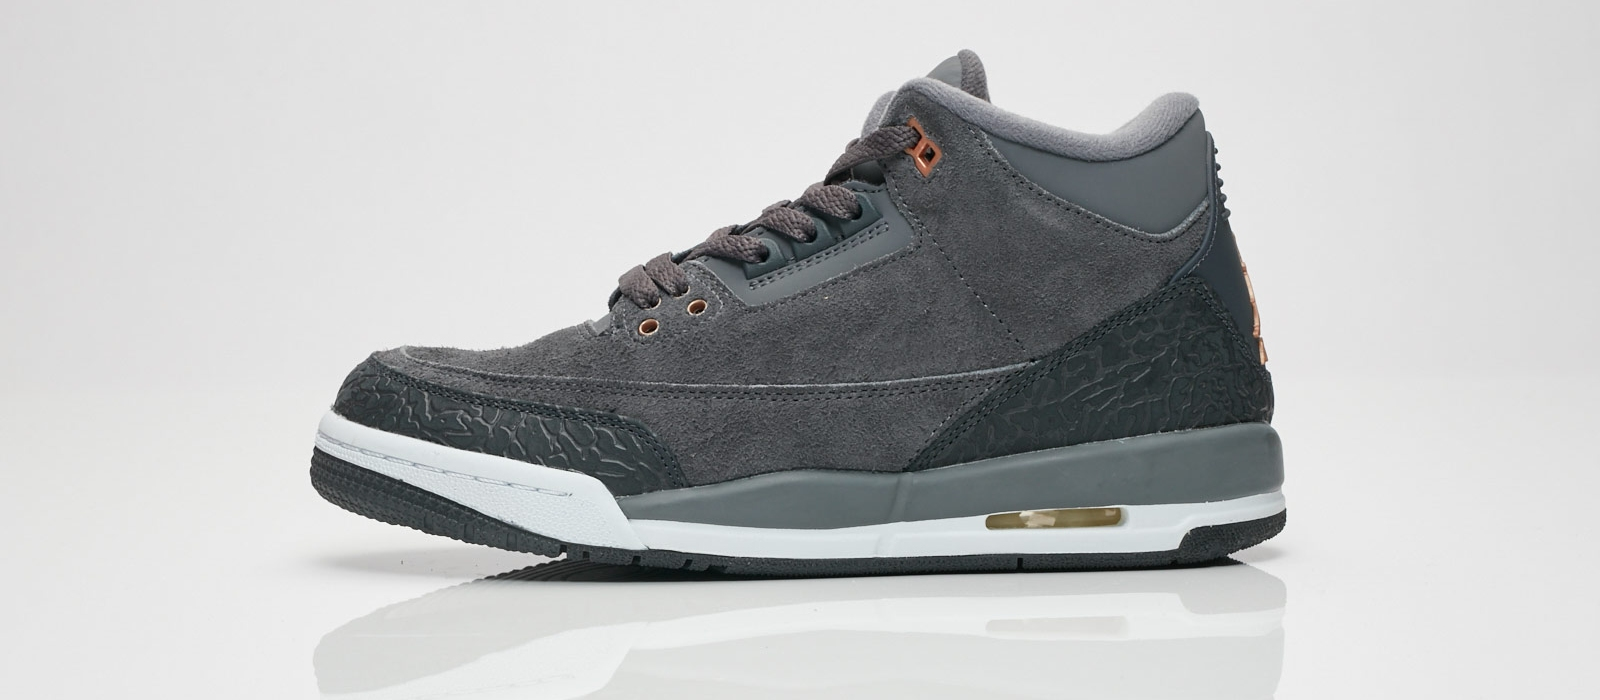 uk availability 226b6 4fb0f Air Jordan 3 Retro GS Color  Dark Grey Metallic Red Bronze-White Style  Code  441140-035. Release Date  10 07 2017. Price   140.00